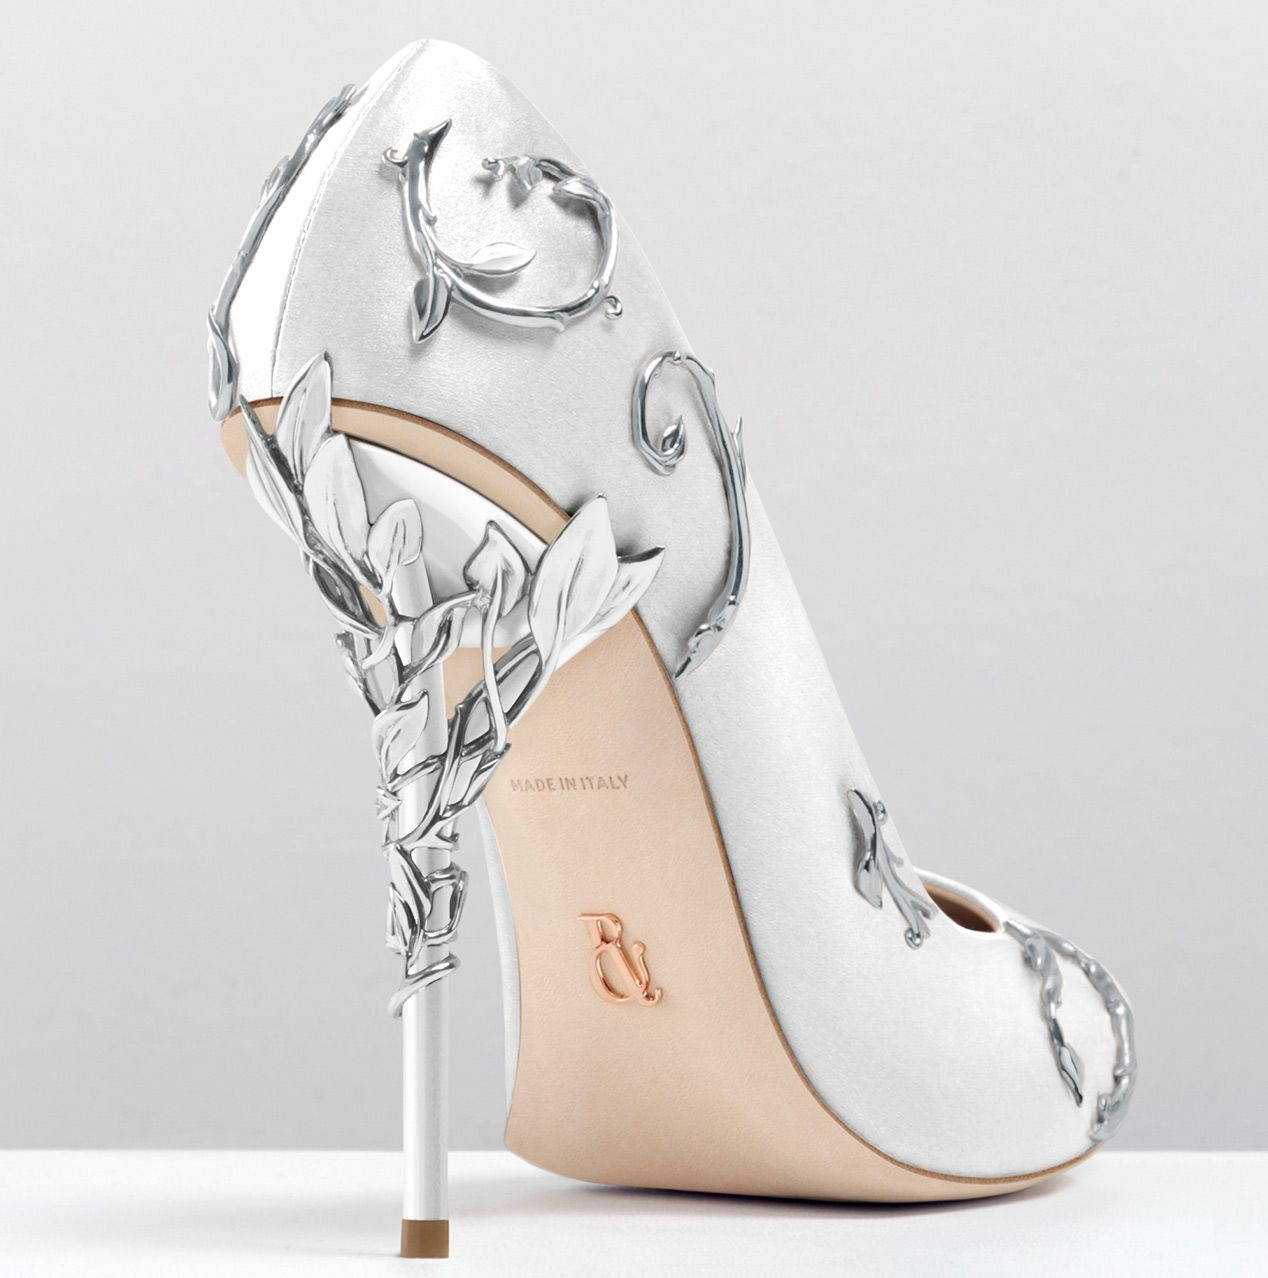 Ralph Russo Silver Heels Promsilver Shoes Heelswhite Wedding